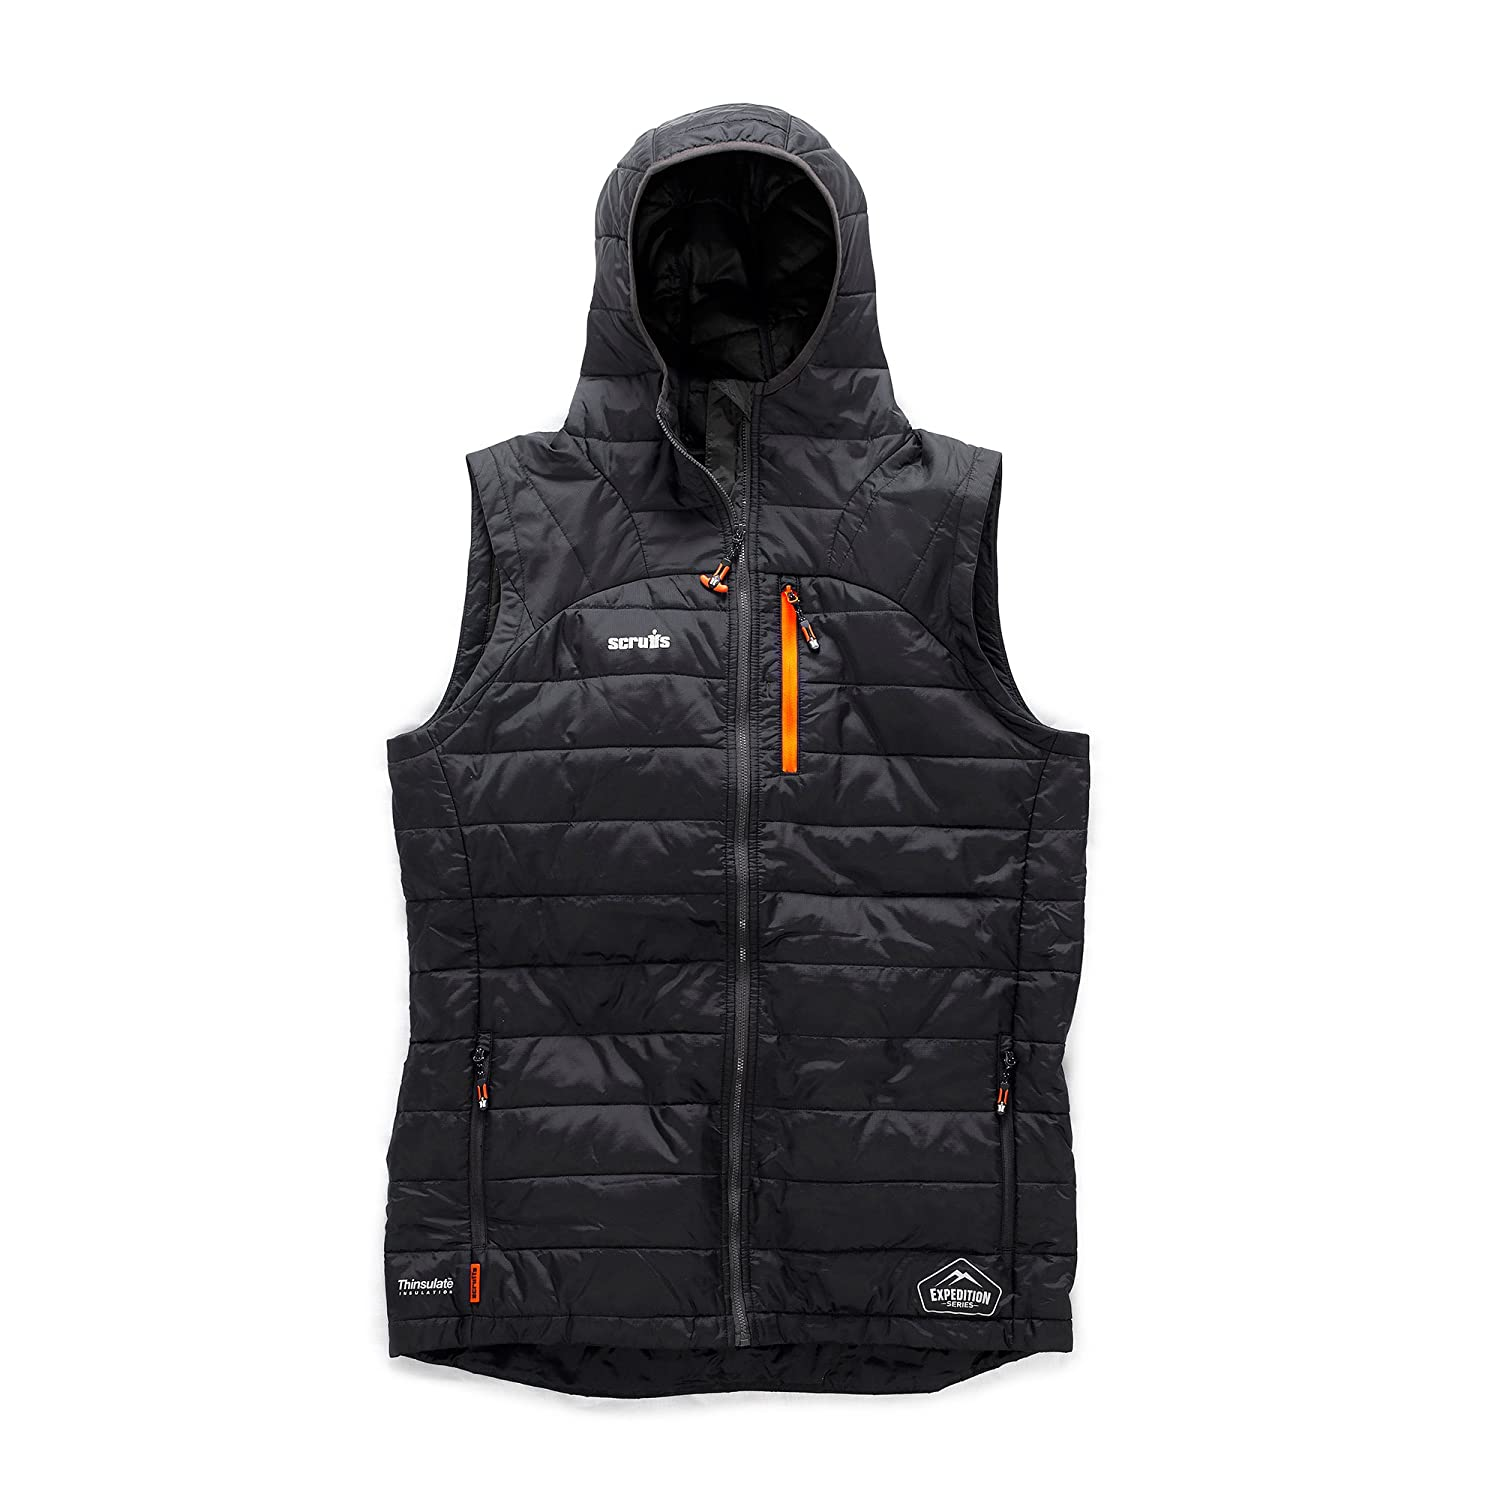 TALLA L. Scruffs Expedition Thermo Gilet Chaqueta, Hombre